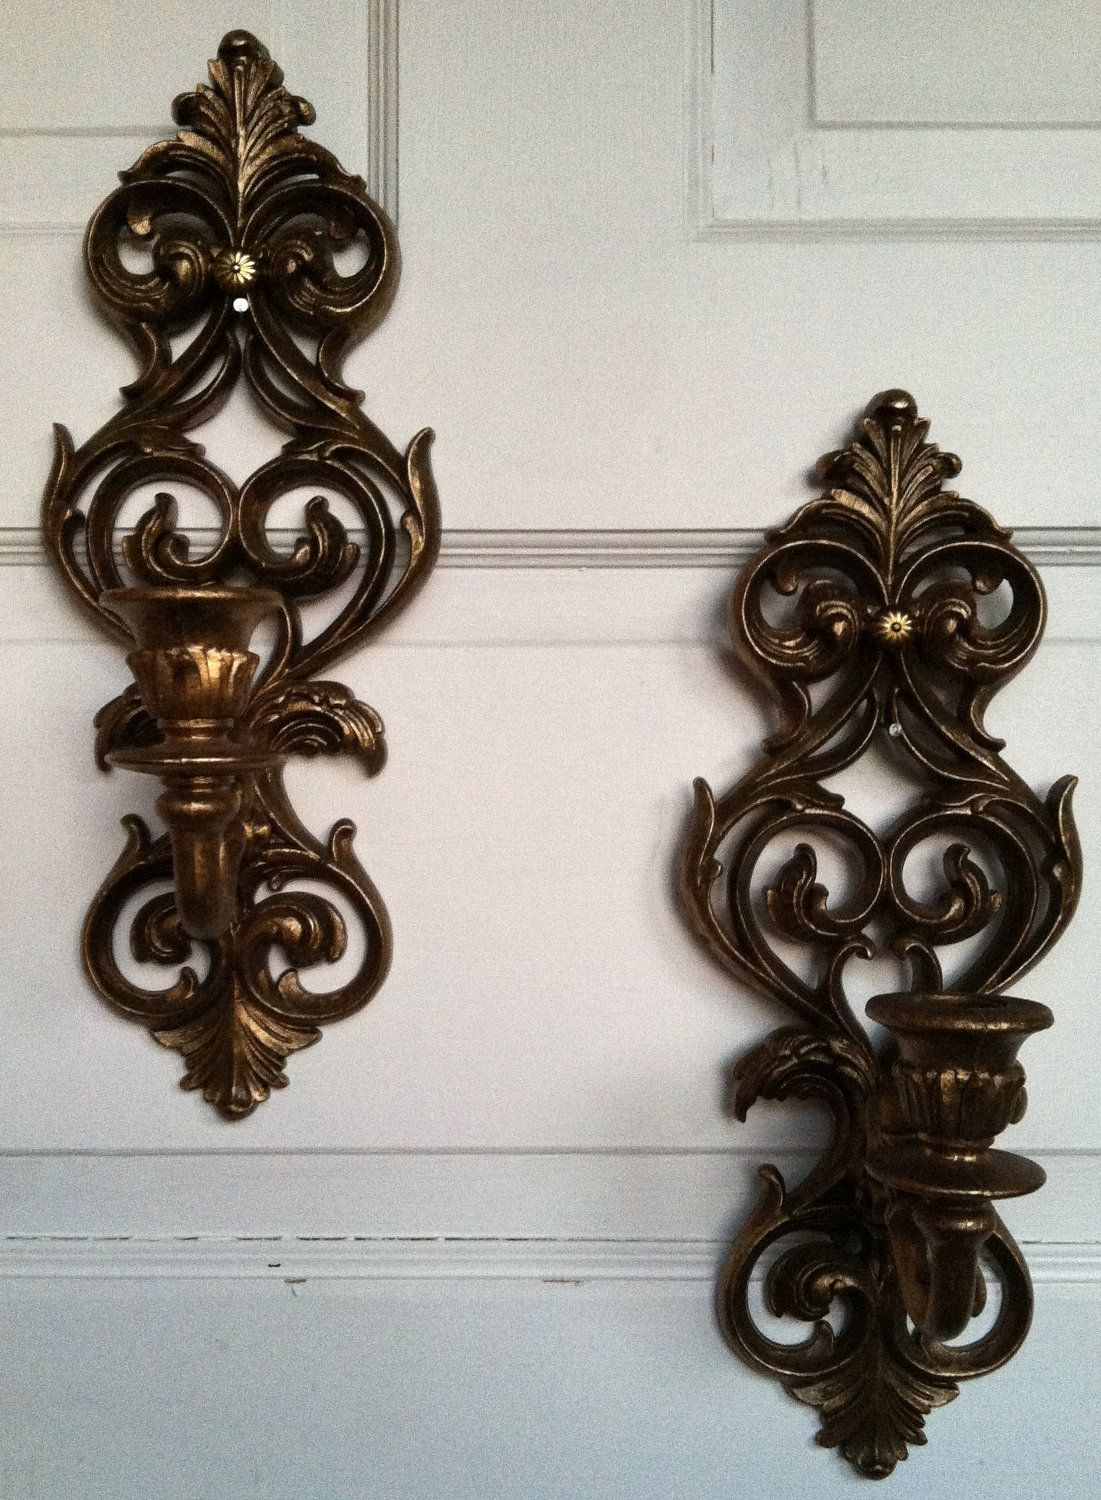 Vintage Candle Wall Sconce   Candle wall sconces, Upcycle ... on Vintage Wall Sconce Candle Holder Decorating Ideas id=57953